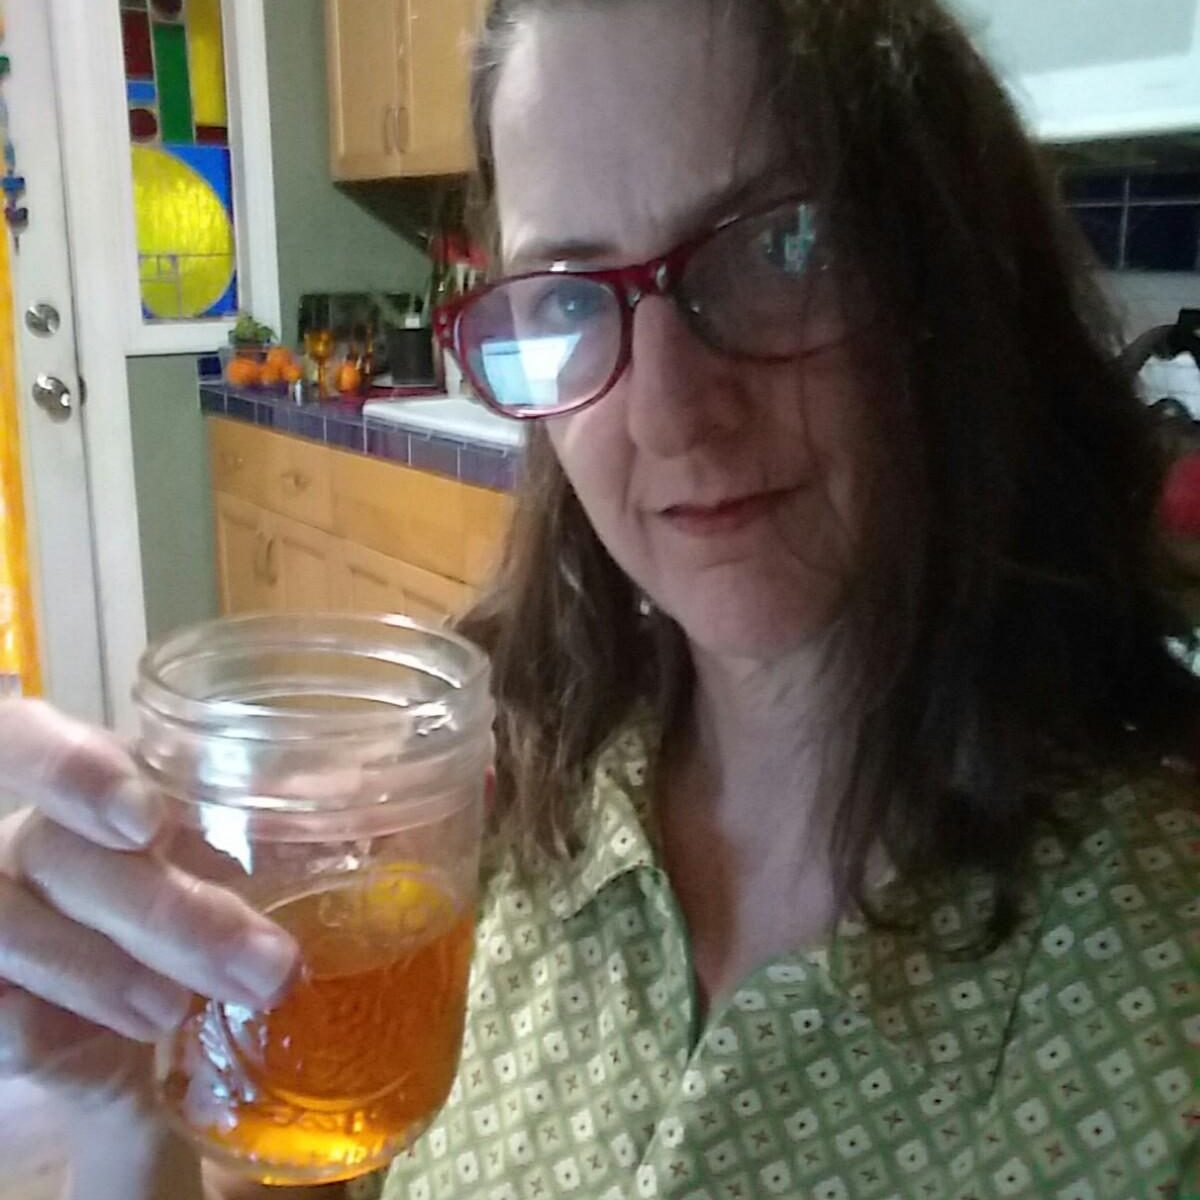 Izzi raising a toast and wishing you a good hour or two